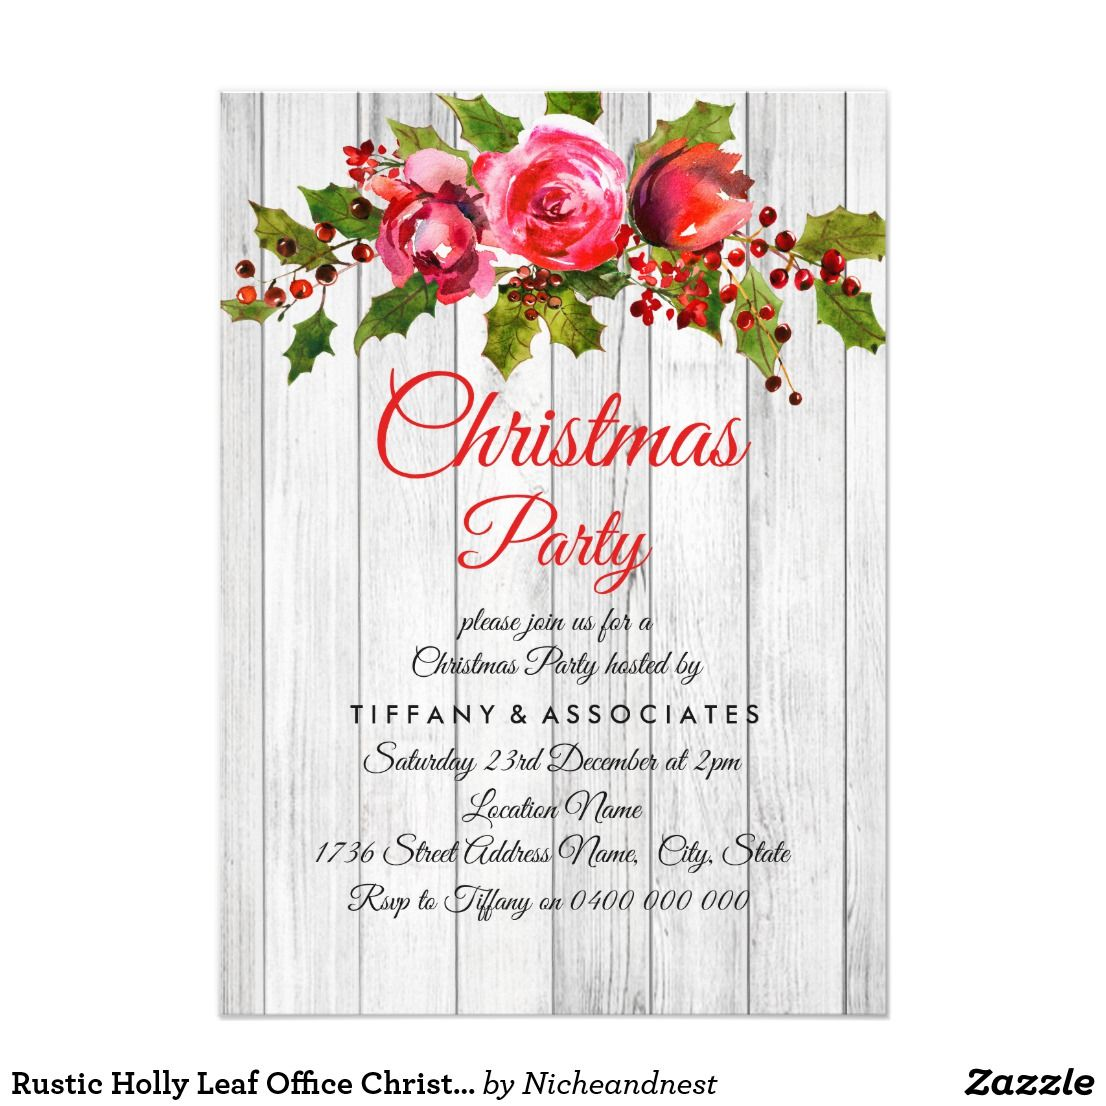 rustic holly leaf office christmas party invite